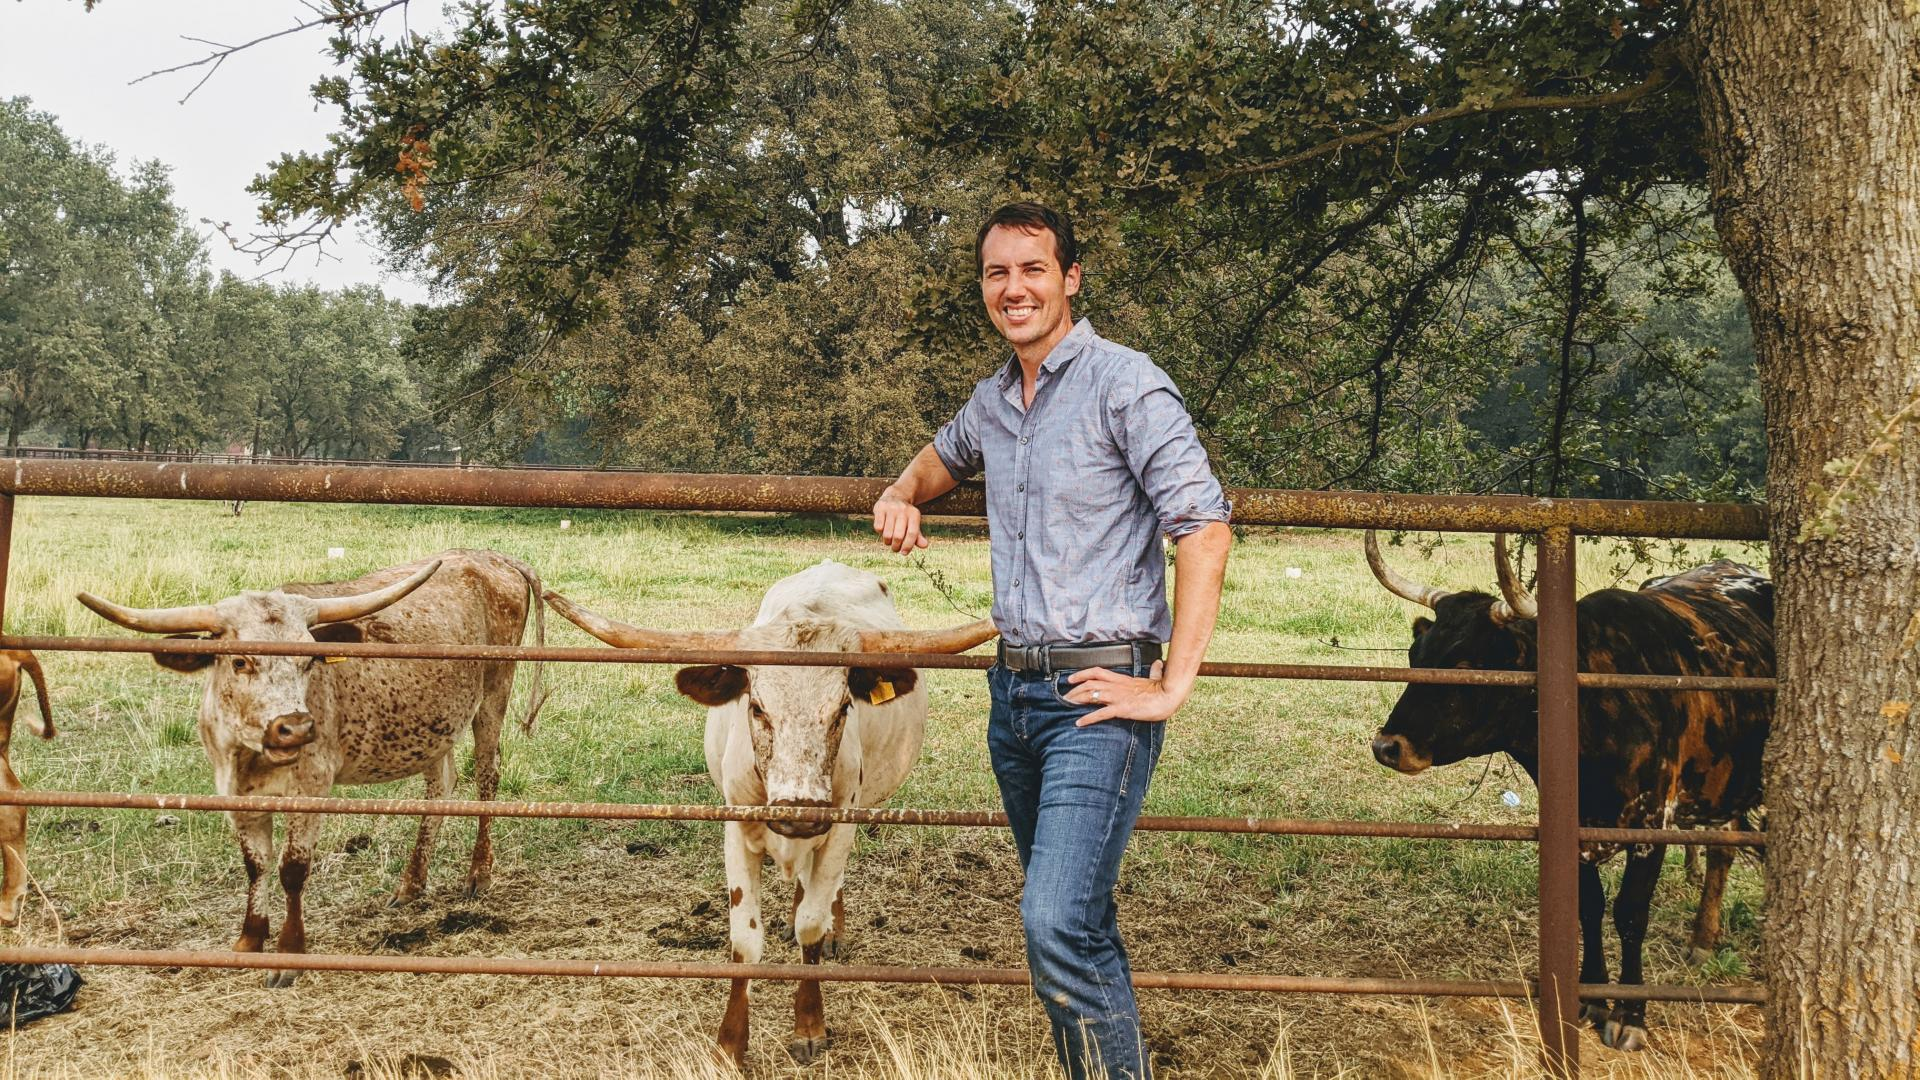 Benjamin Houlton, the Ronald P. Lynch Dean of the College of Agriculture and Life Sciences, stands by some cows in a pasture.